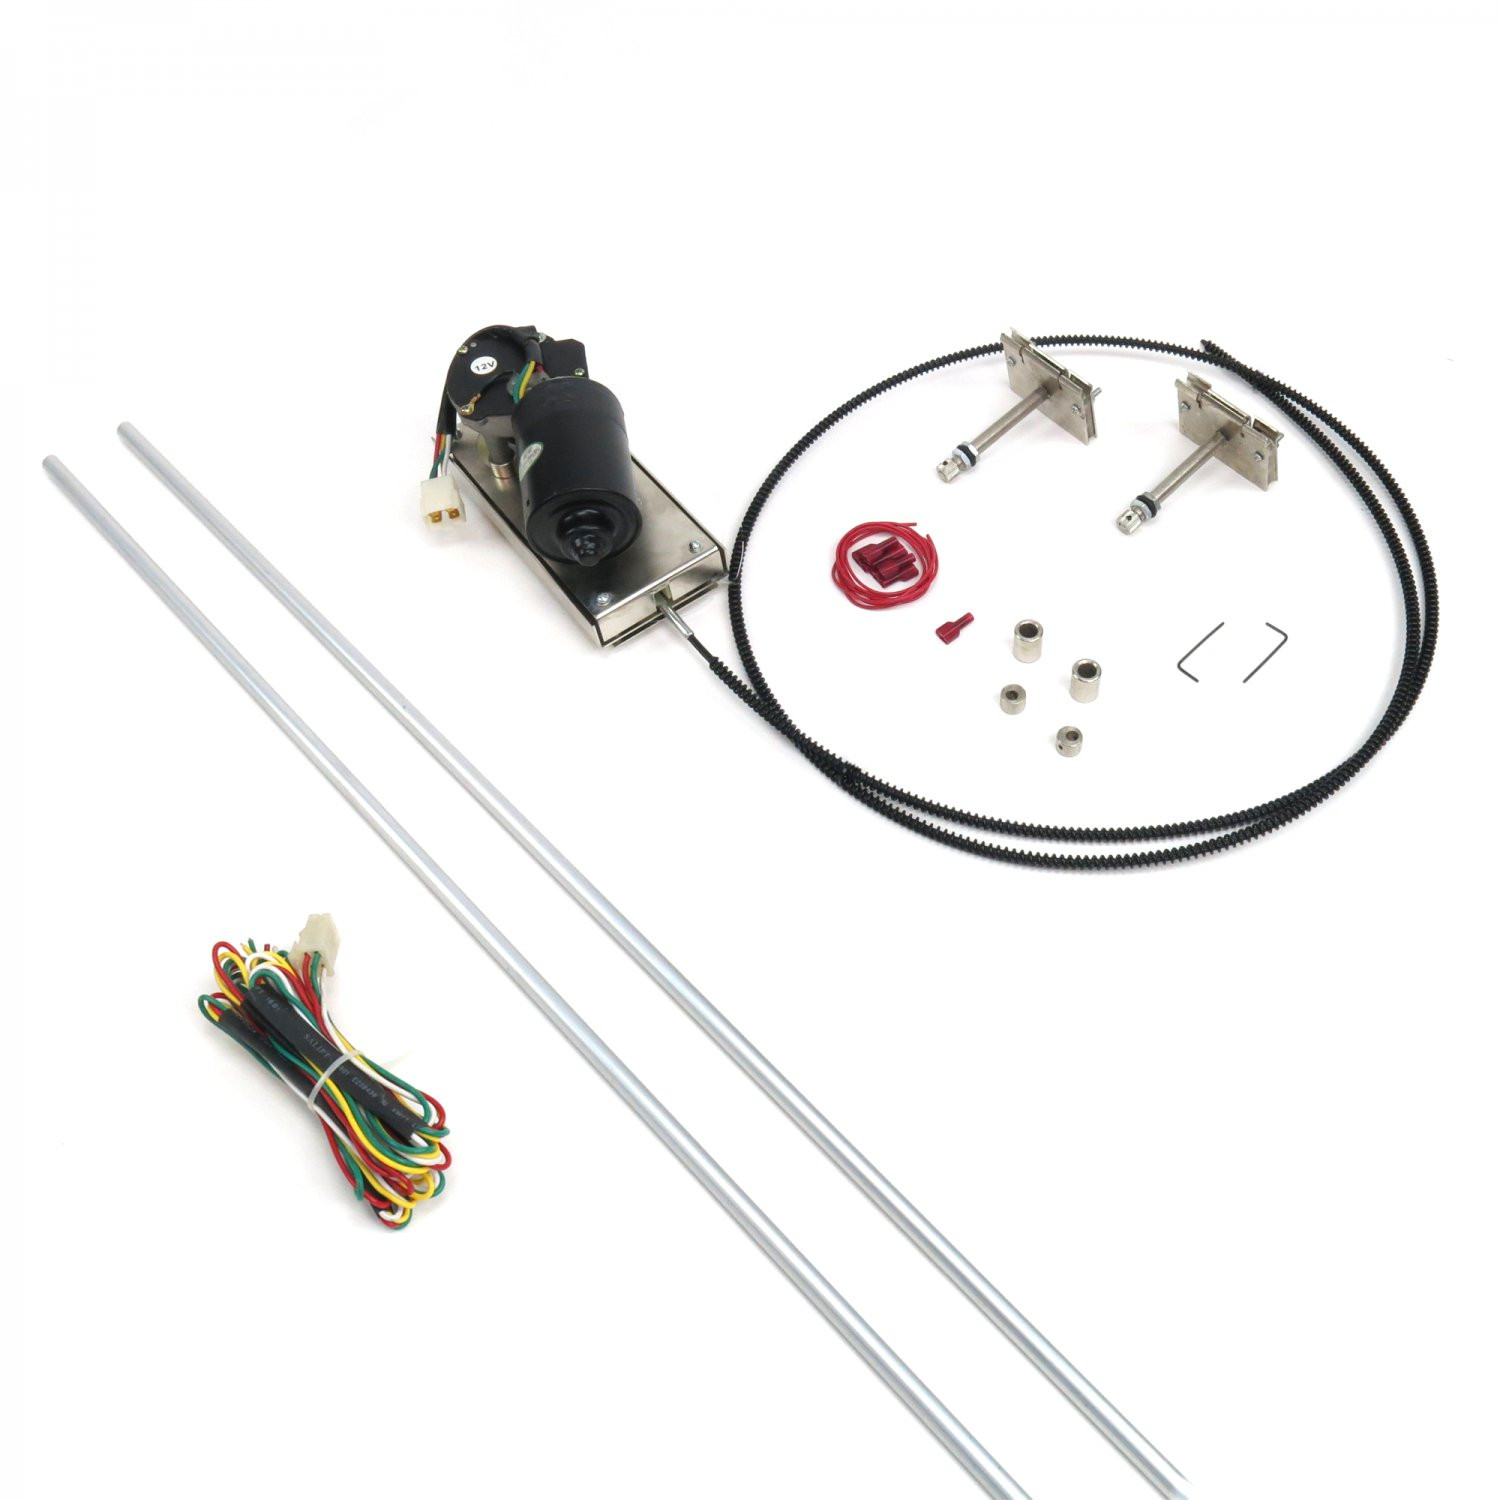 Autoloc 9865 Windshield Wiper Motor Kit